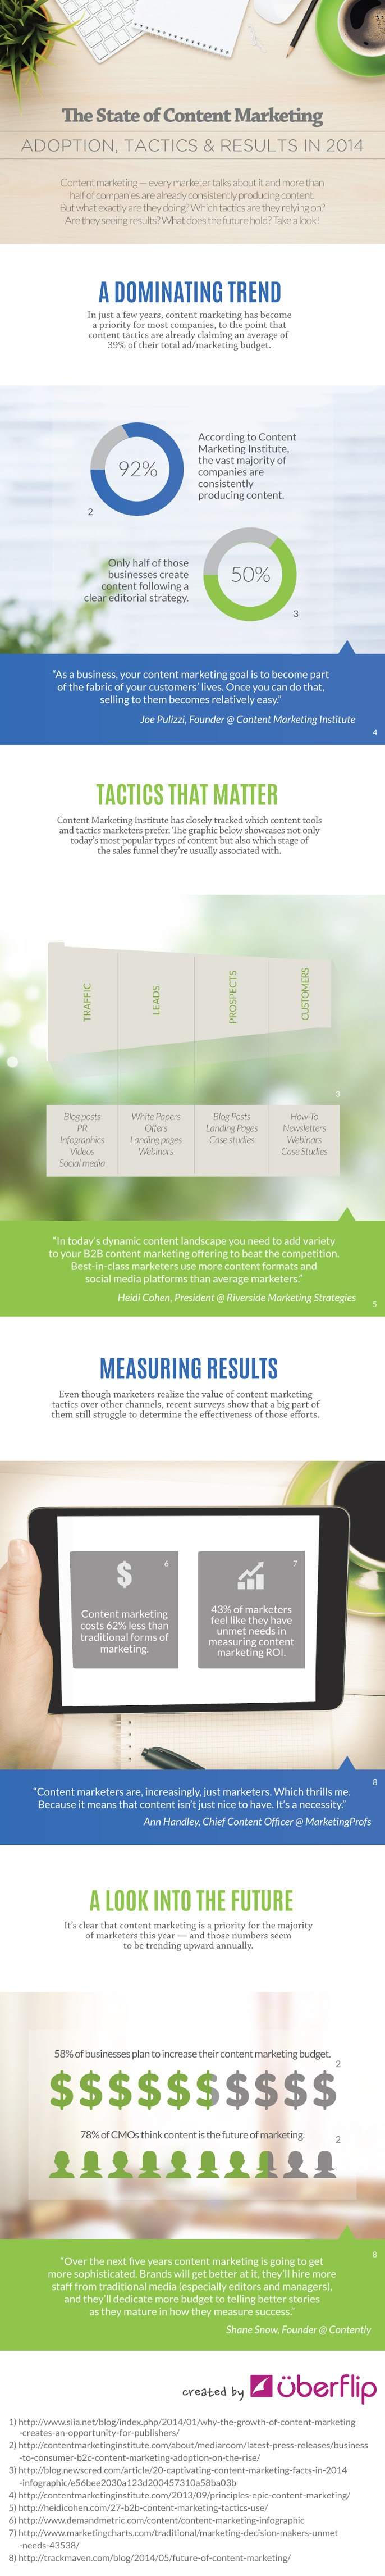 The State Of Content Marketing In 2014 - #Infographic #ContentMarketing